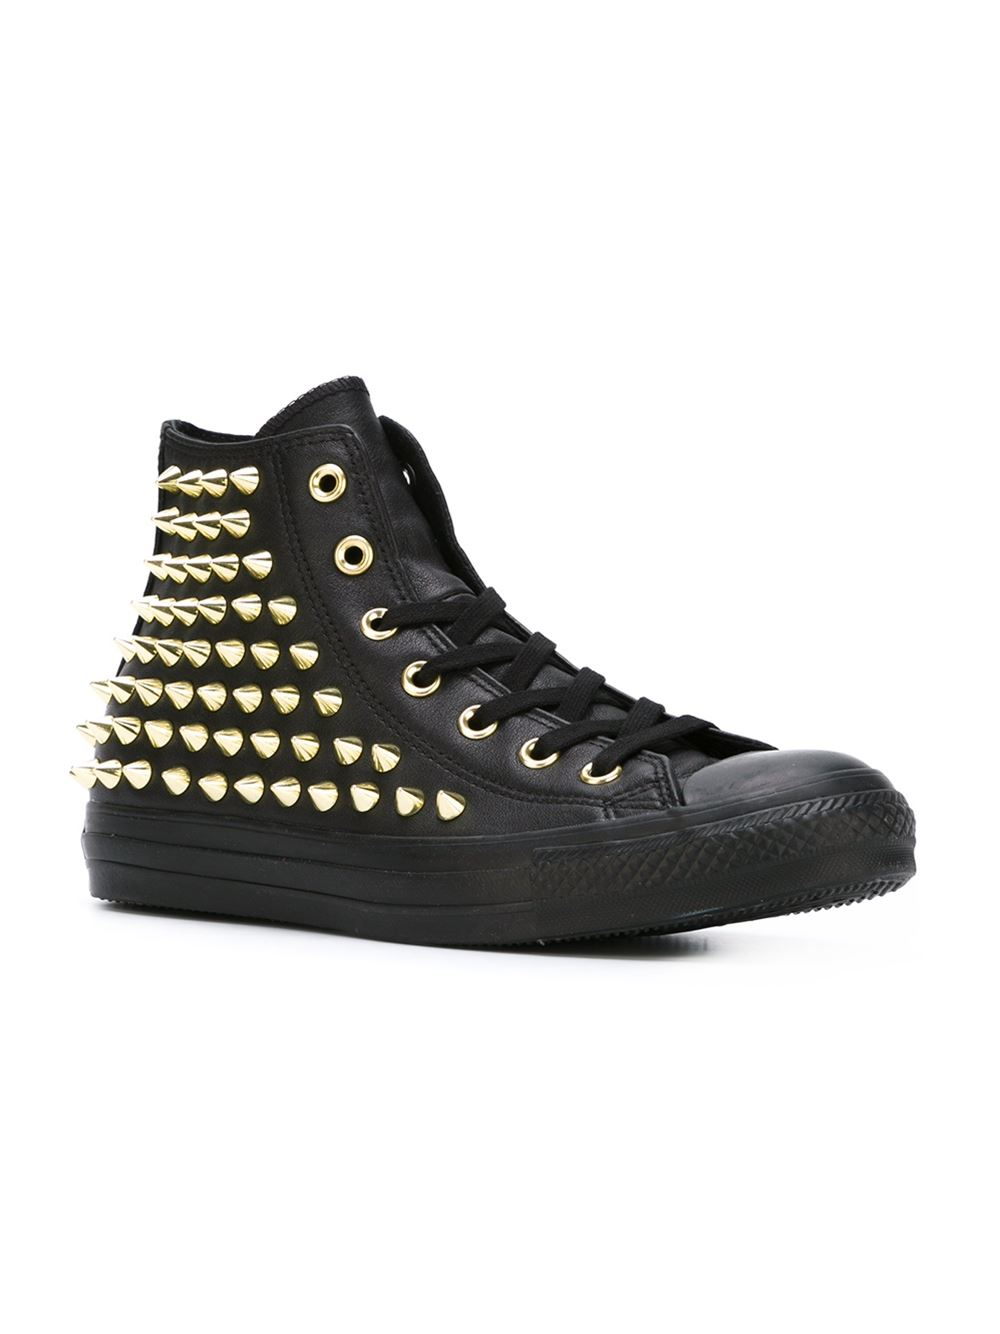 Studded sneakers kick up your kicks and show your sense of style. These fun, vibrant, blingy sneakers come in a variety of styles and colors, including black suede with silver studs across the toes, colorful studded canvas, and funky metallic leather.